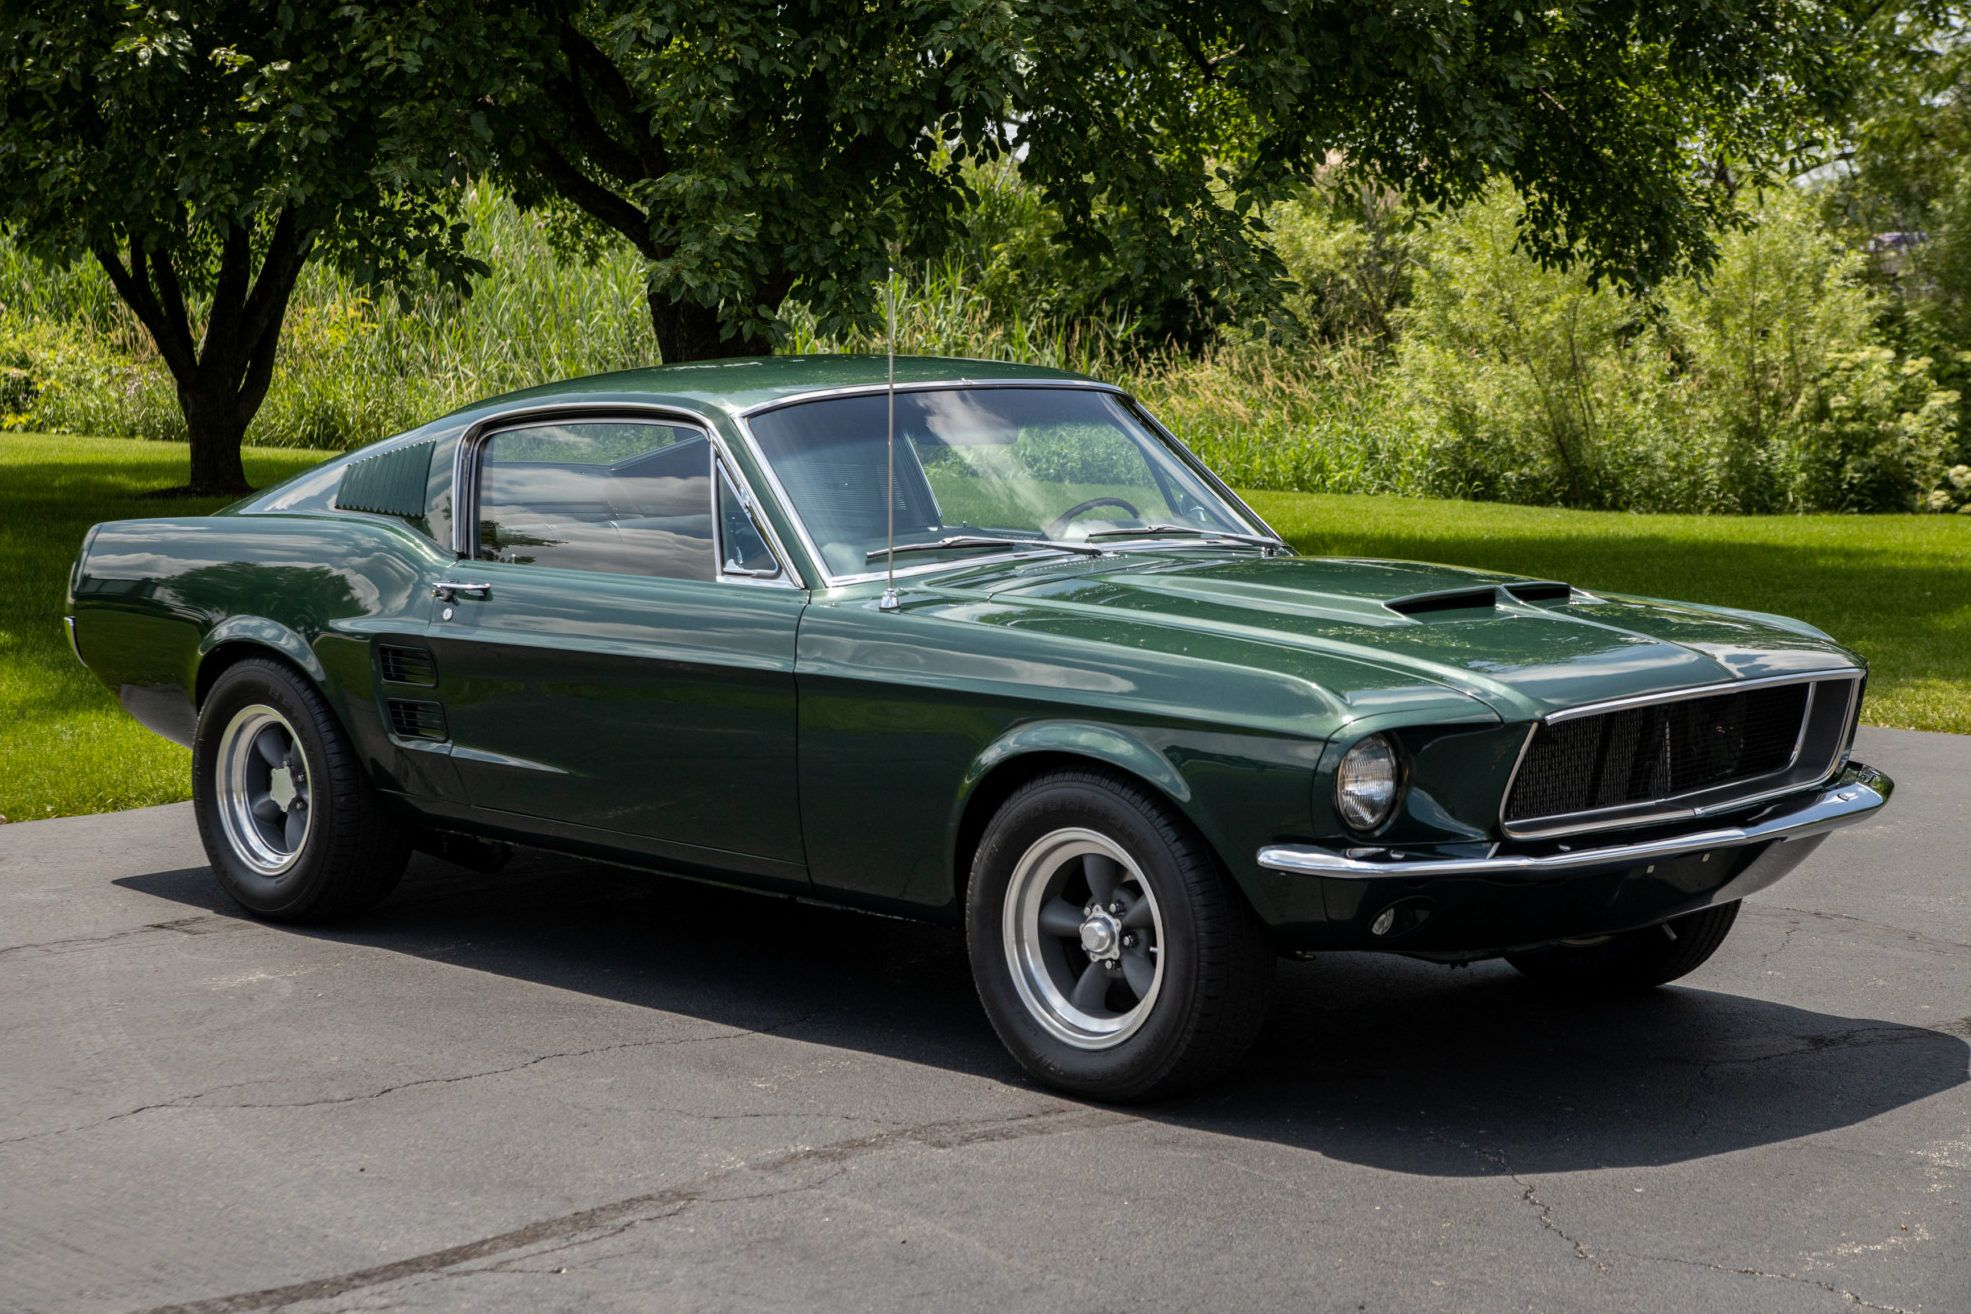 1967 Ford Mustang Fastback Bullitt Tribute